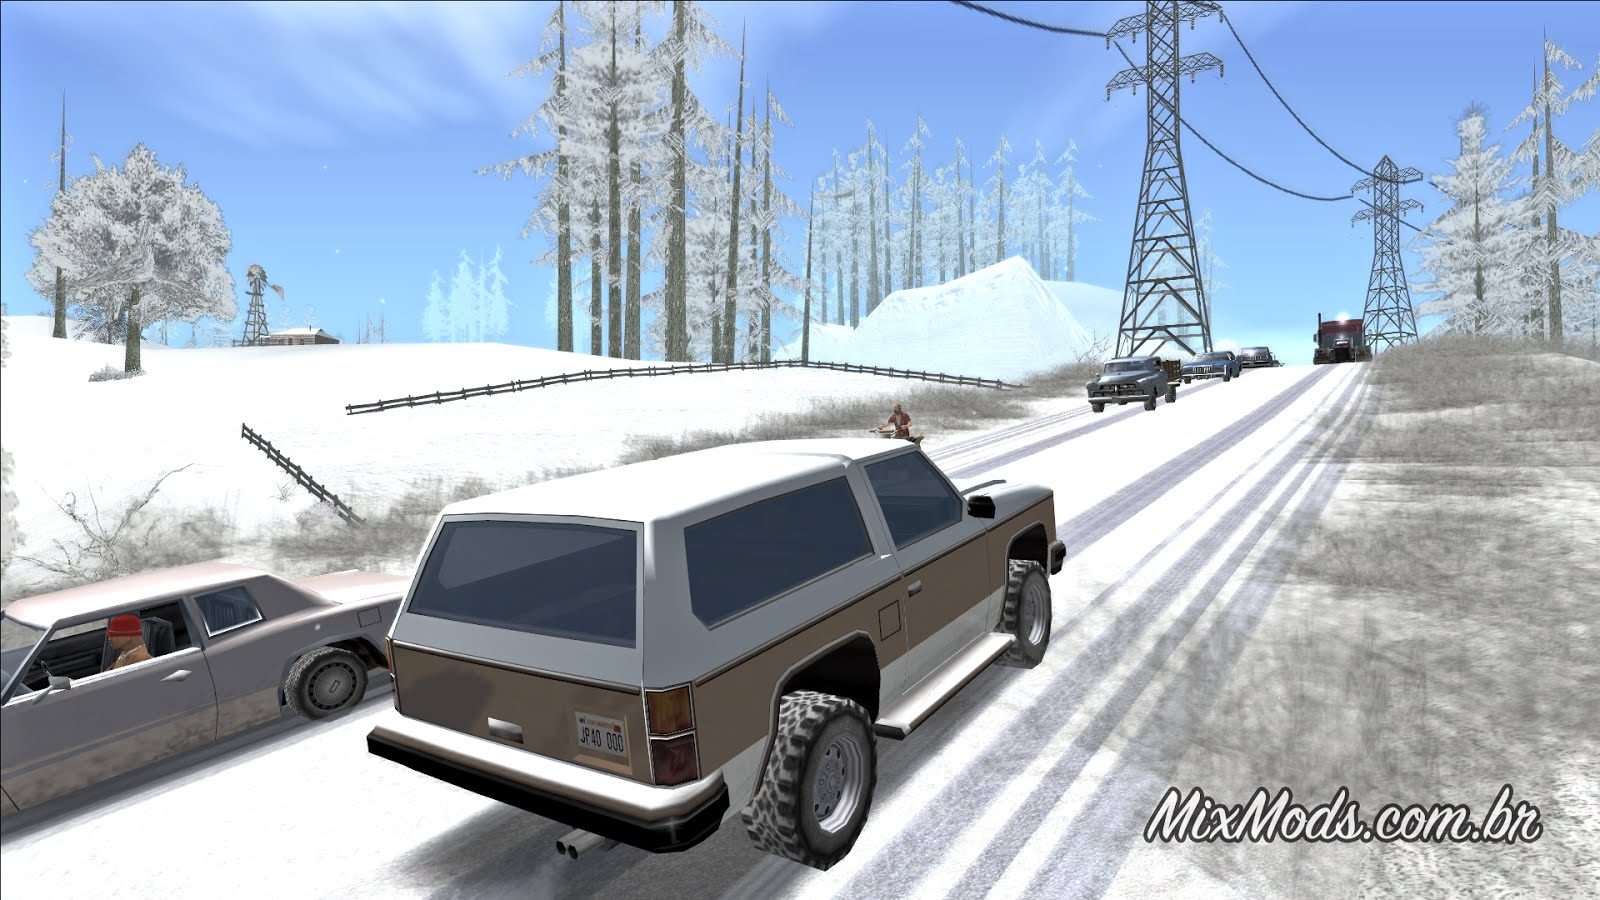 gta-mod-sa-snow-conversion-textures-neve